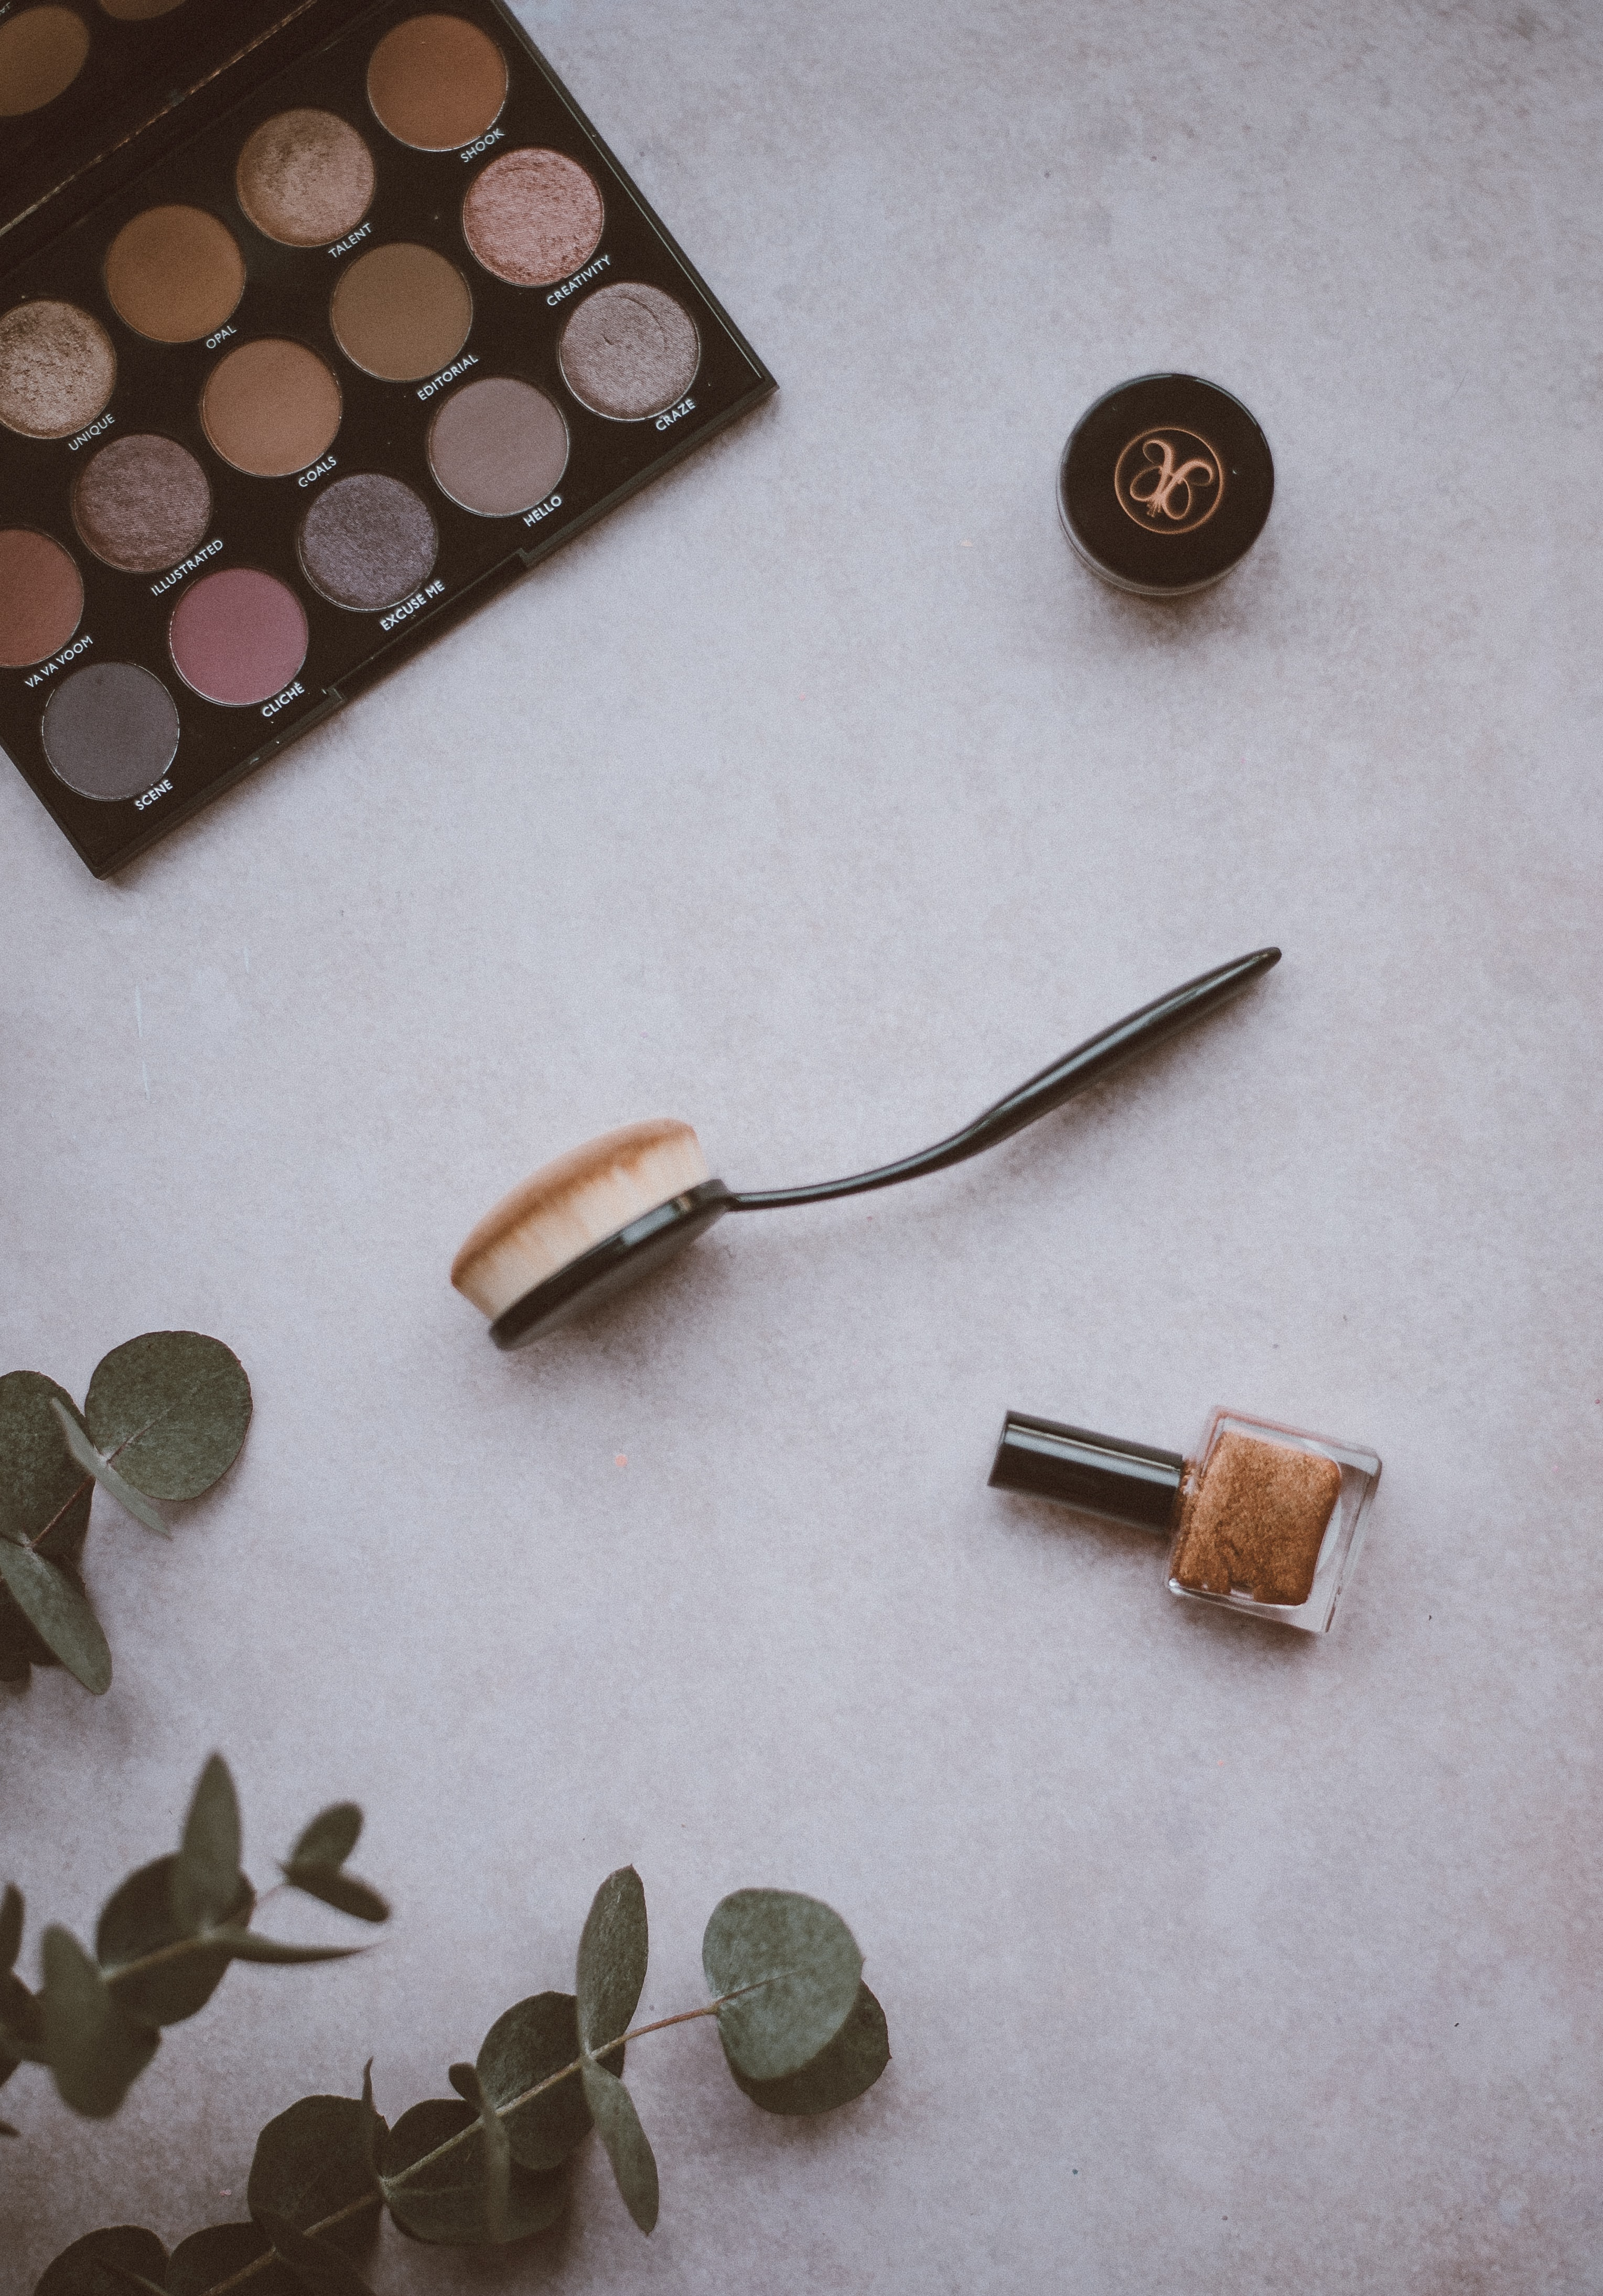 spoon make up brush near eyeshadow palette